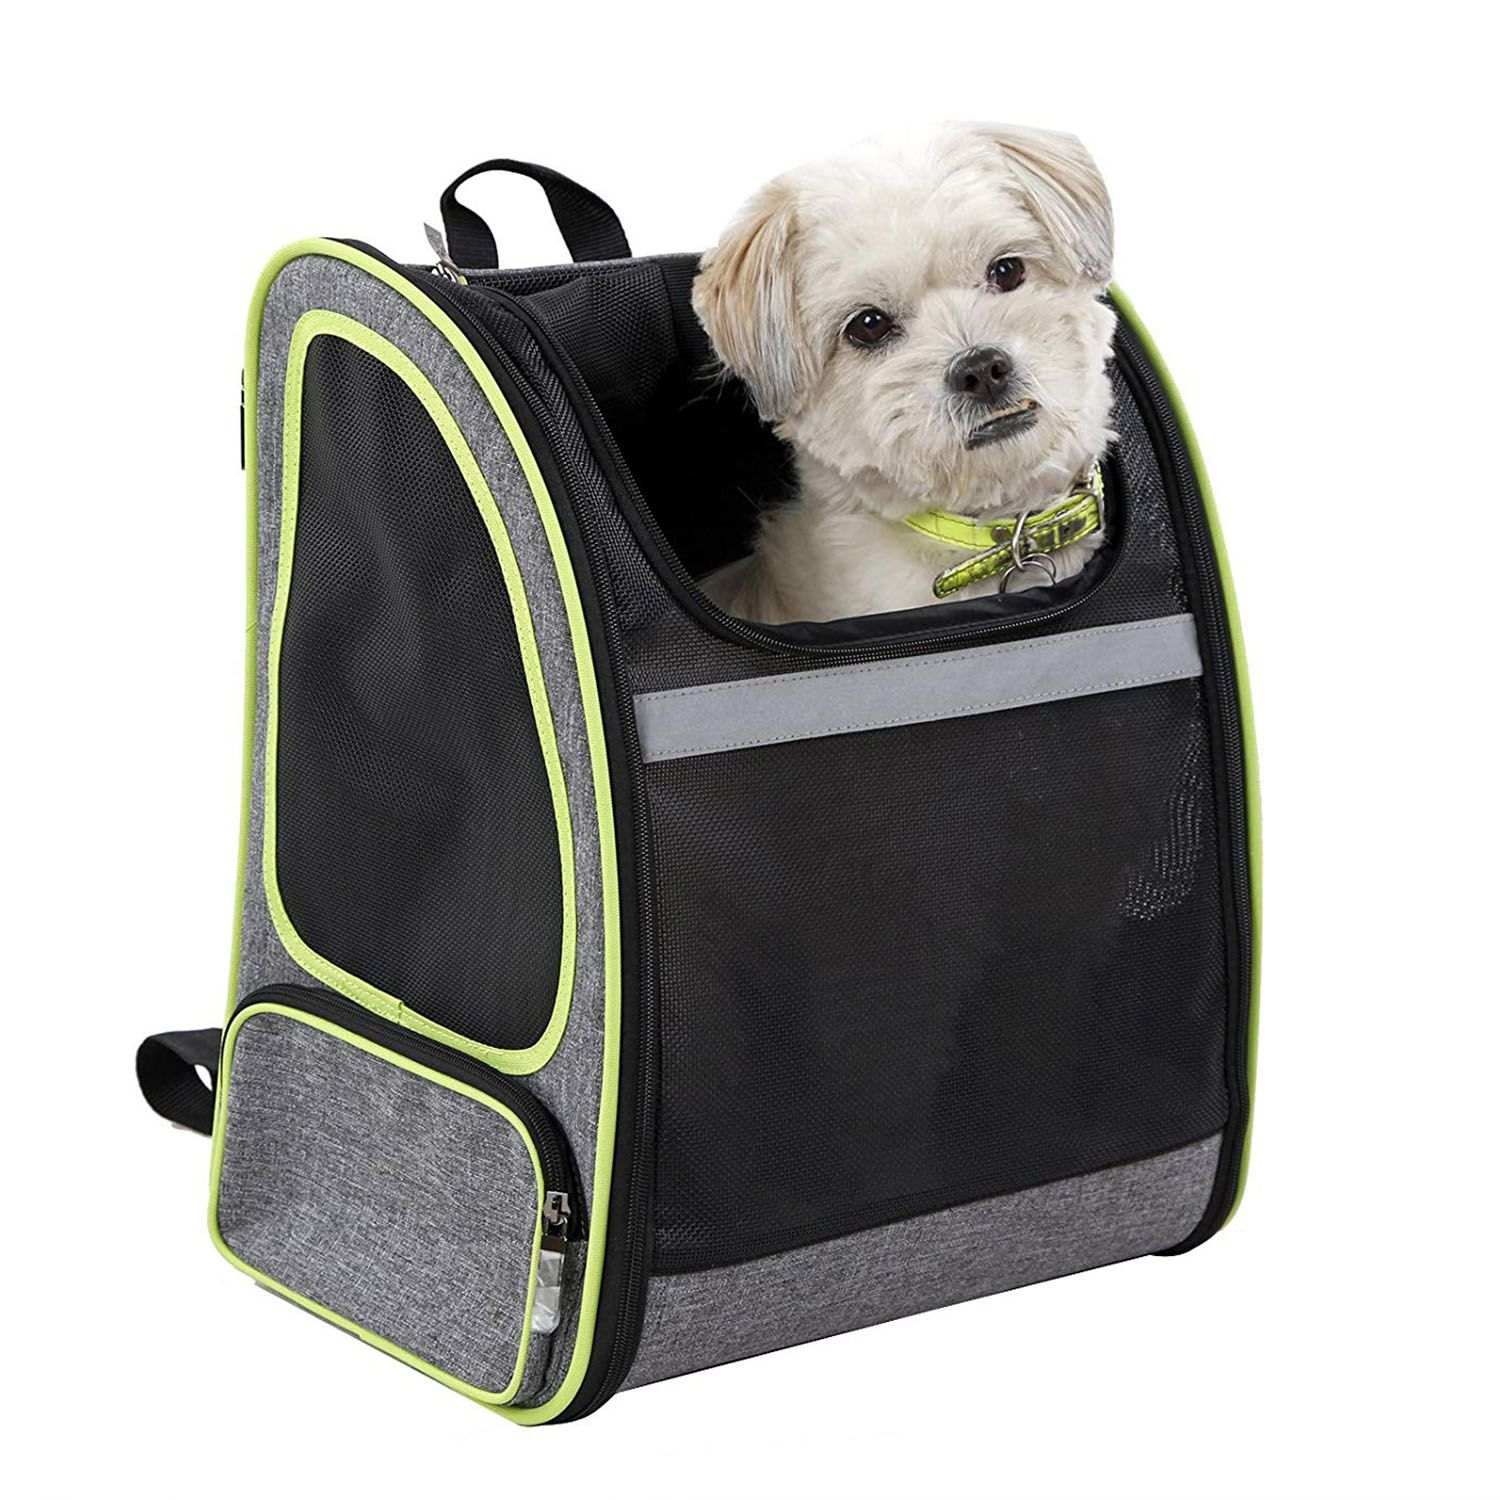 Hot Premium Pet Carrier Backpack For Small Cats And Dogs Ventilated Design, Strap, Buckle Support Designed For Travel, Hiking